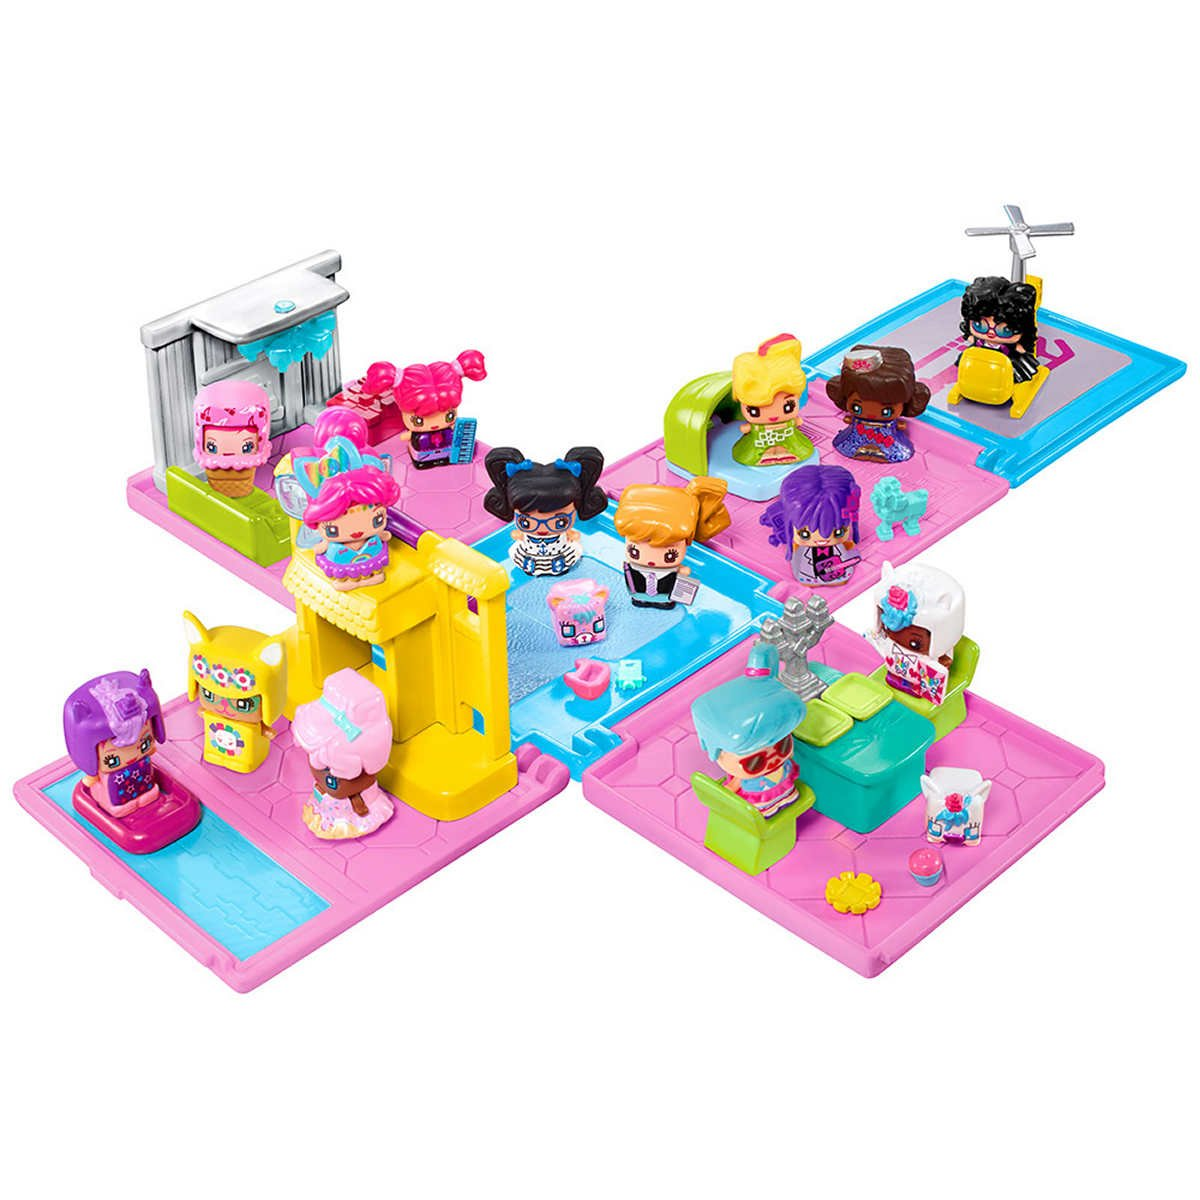 My mini mixie qs 16 figures villa playset with mystery figures features toy pets themed furniture moving parts hairstyles outfits and animal